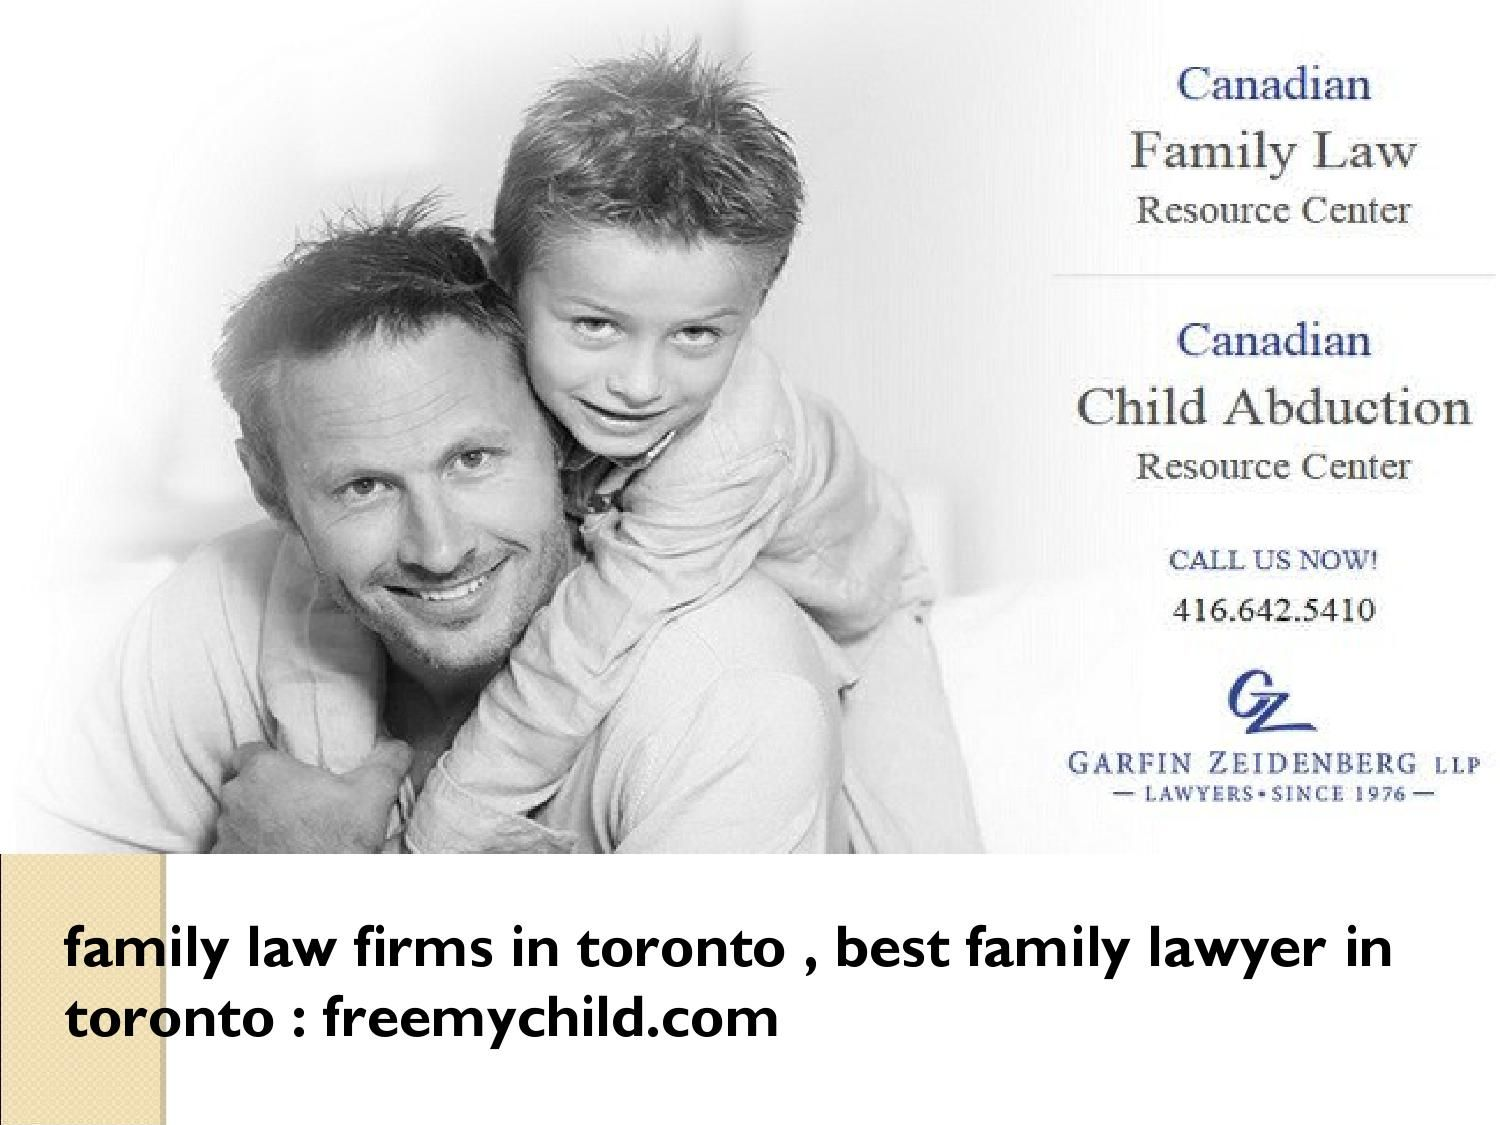 Family Law Firms In Toronto, Best Family Lawyer in Toronto